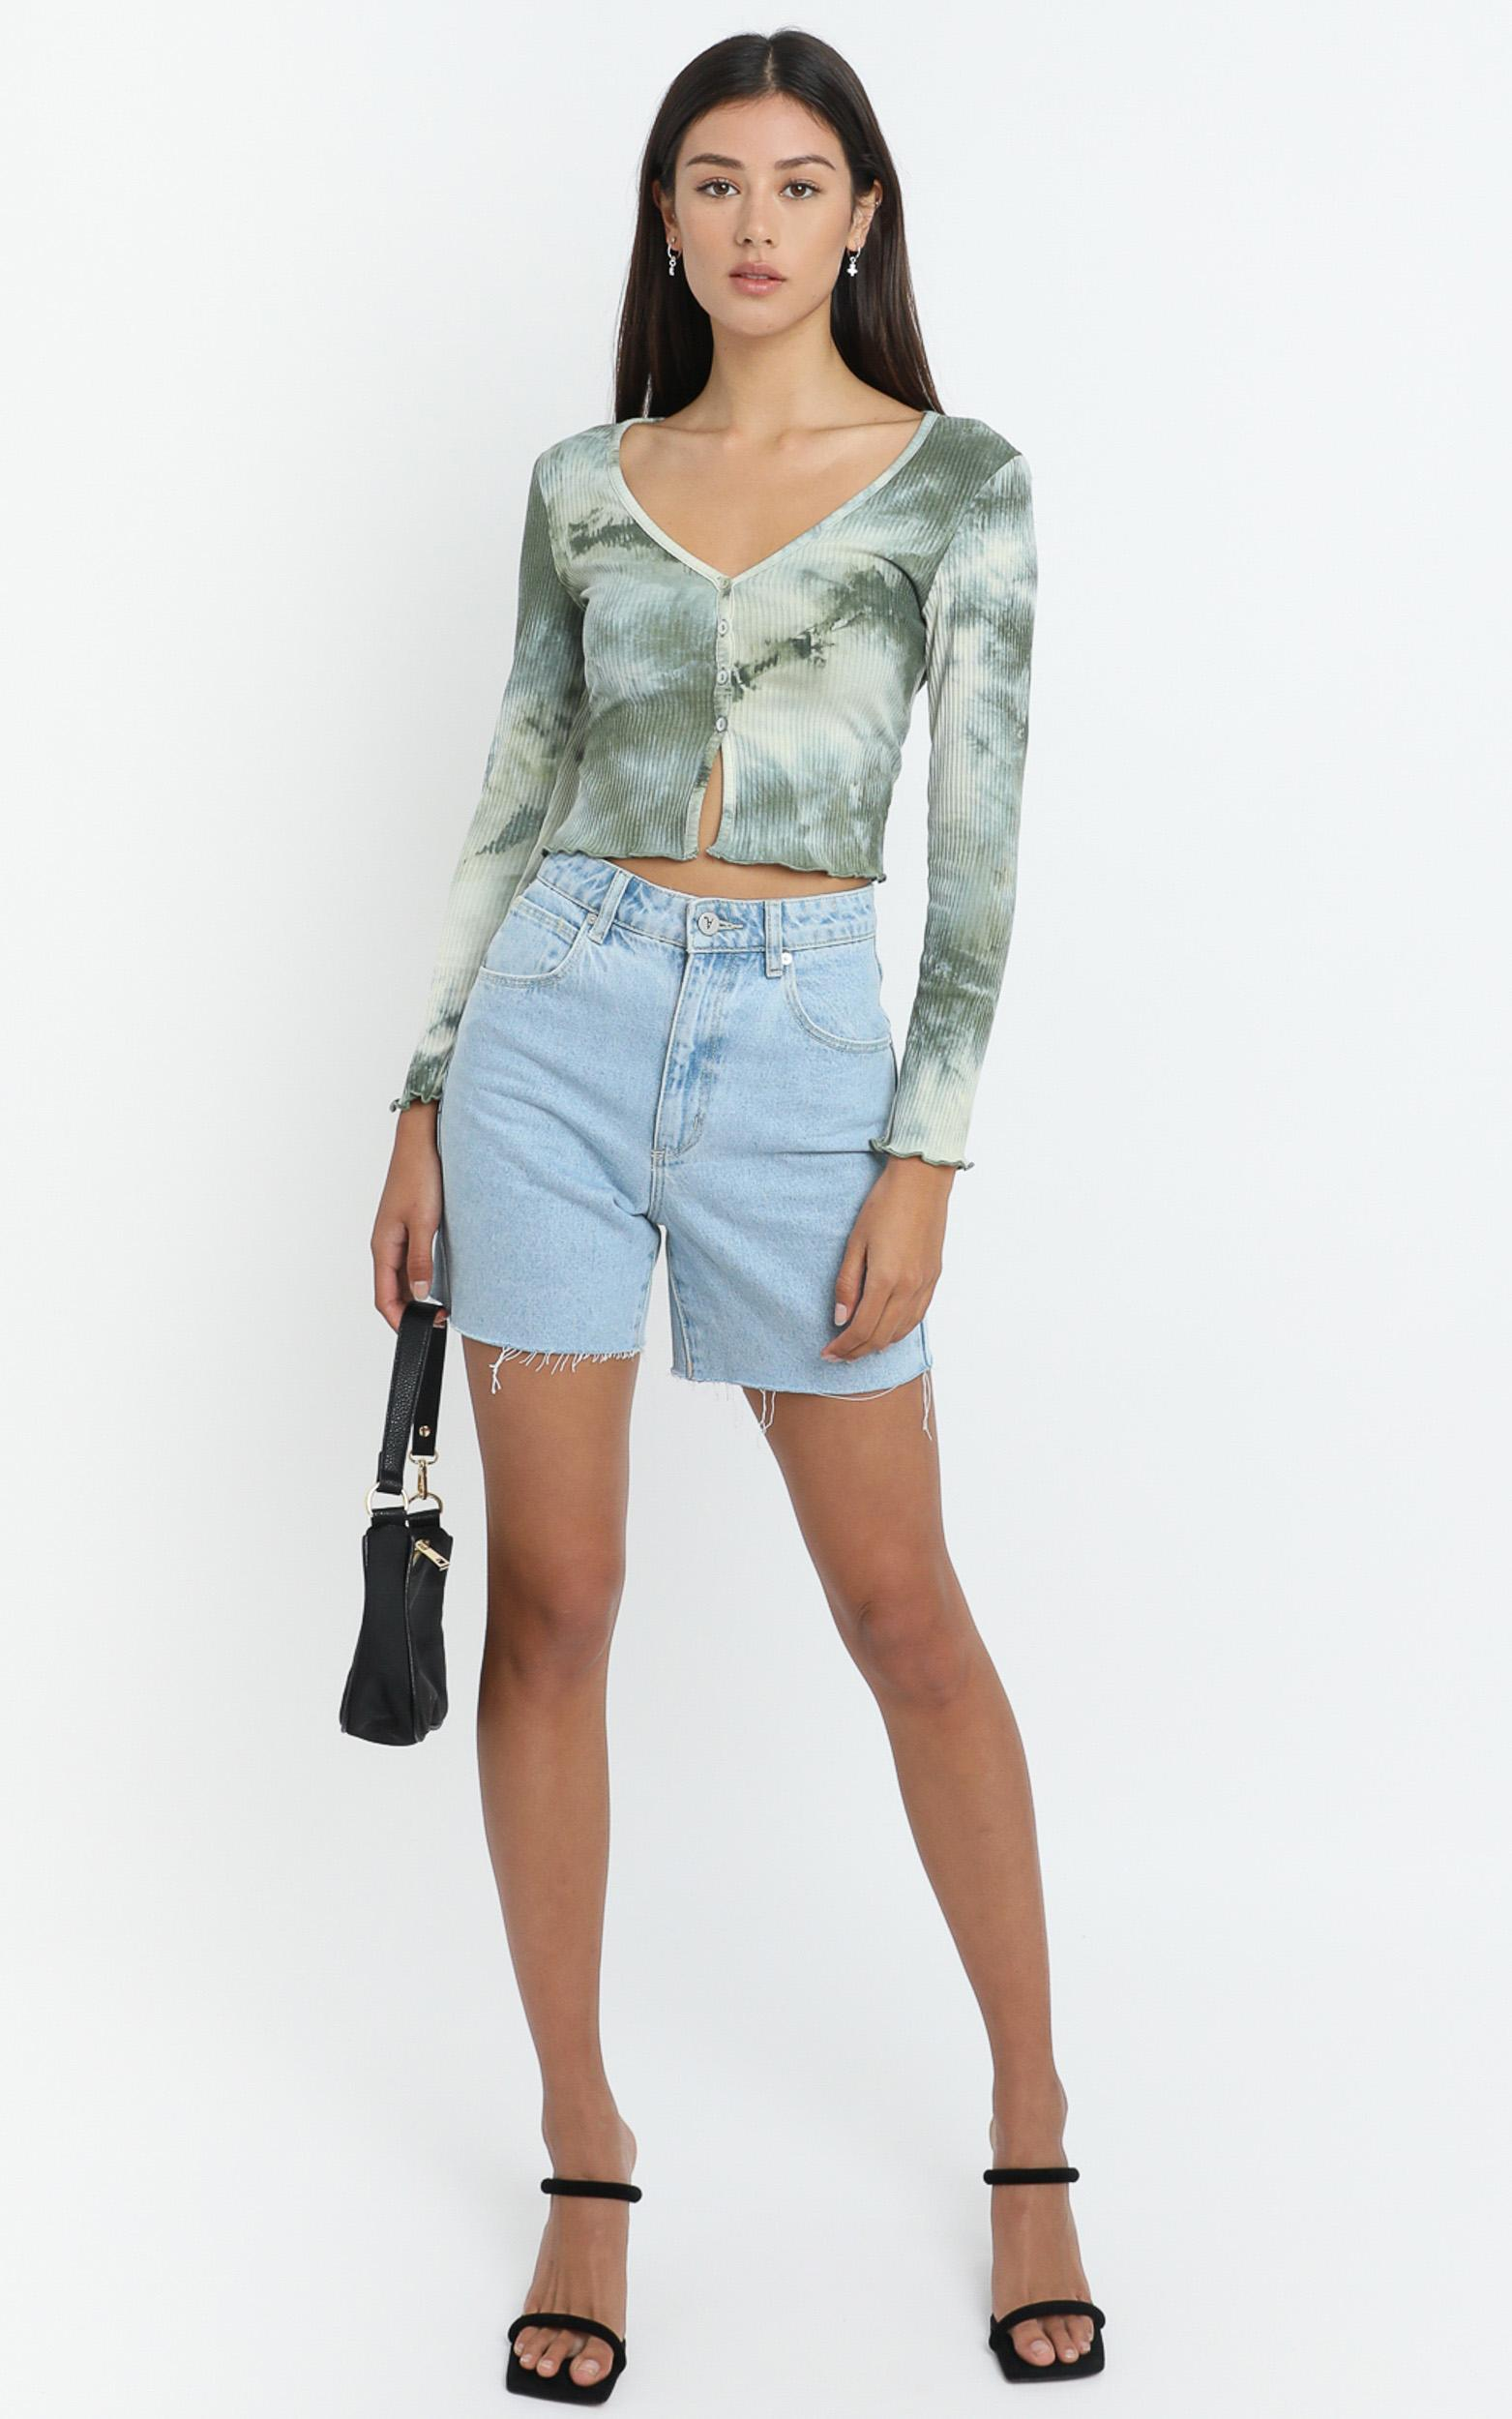 Nimi Top in Forest Tie Dye - 6 (XS), Green, hi-res image number null